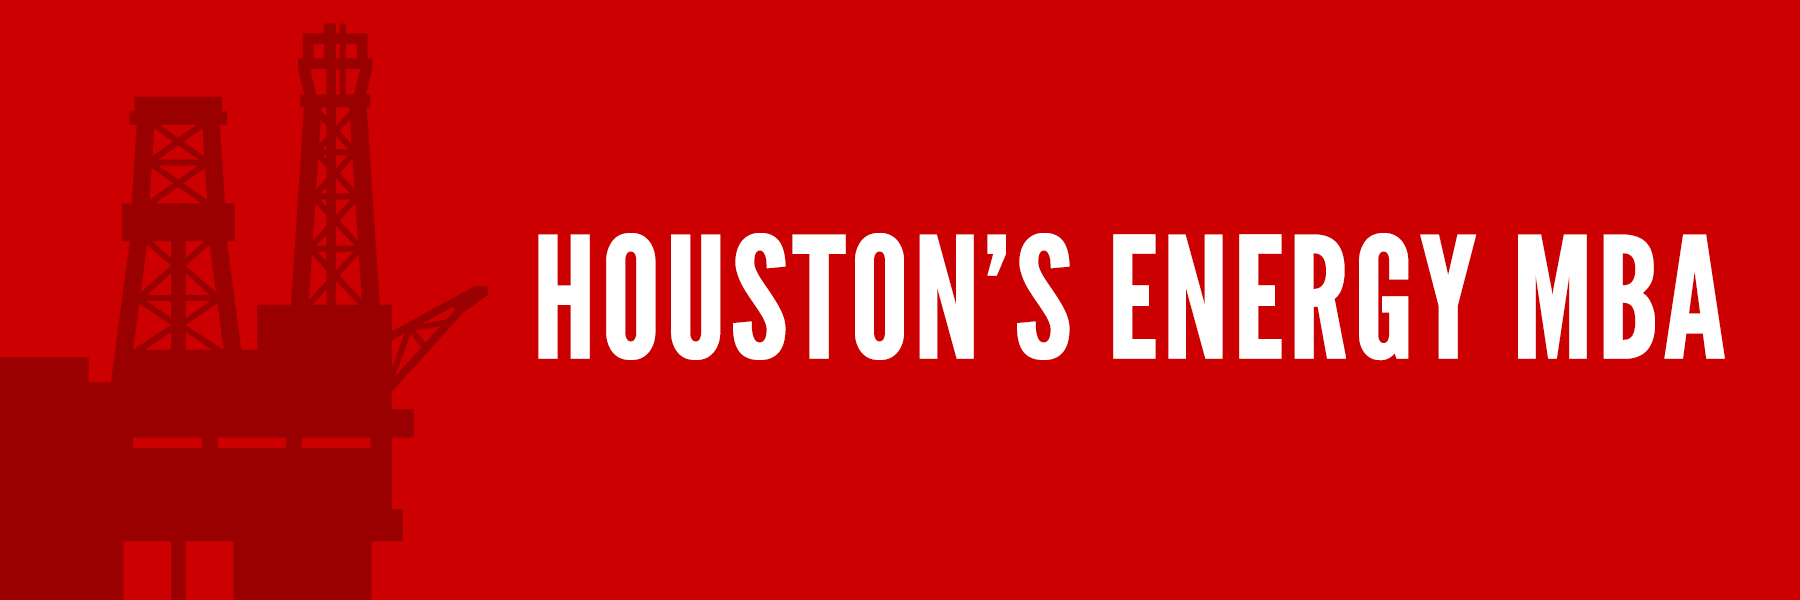 Houston's Energy MBA